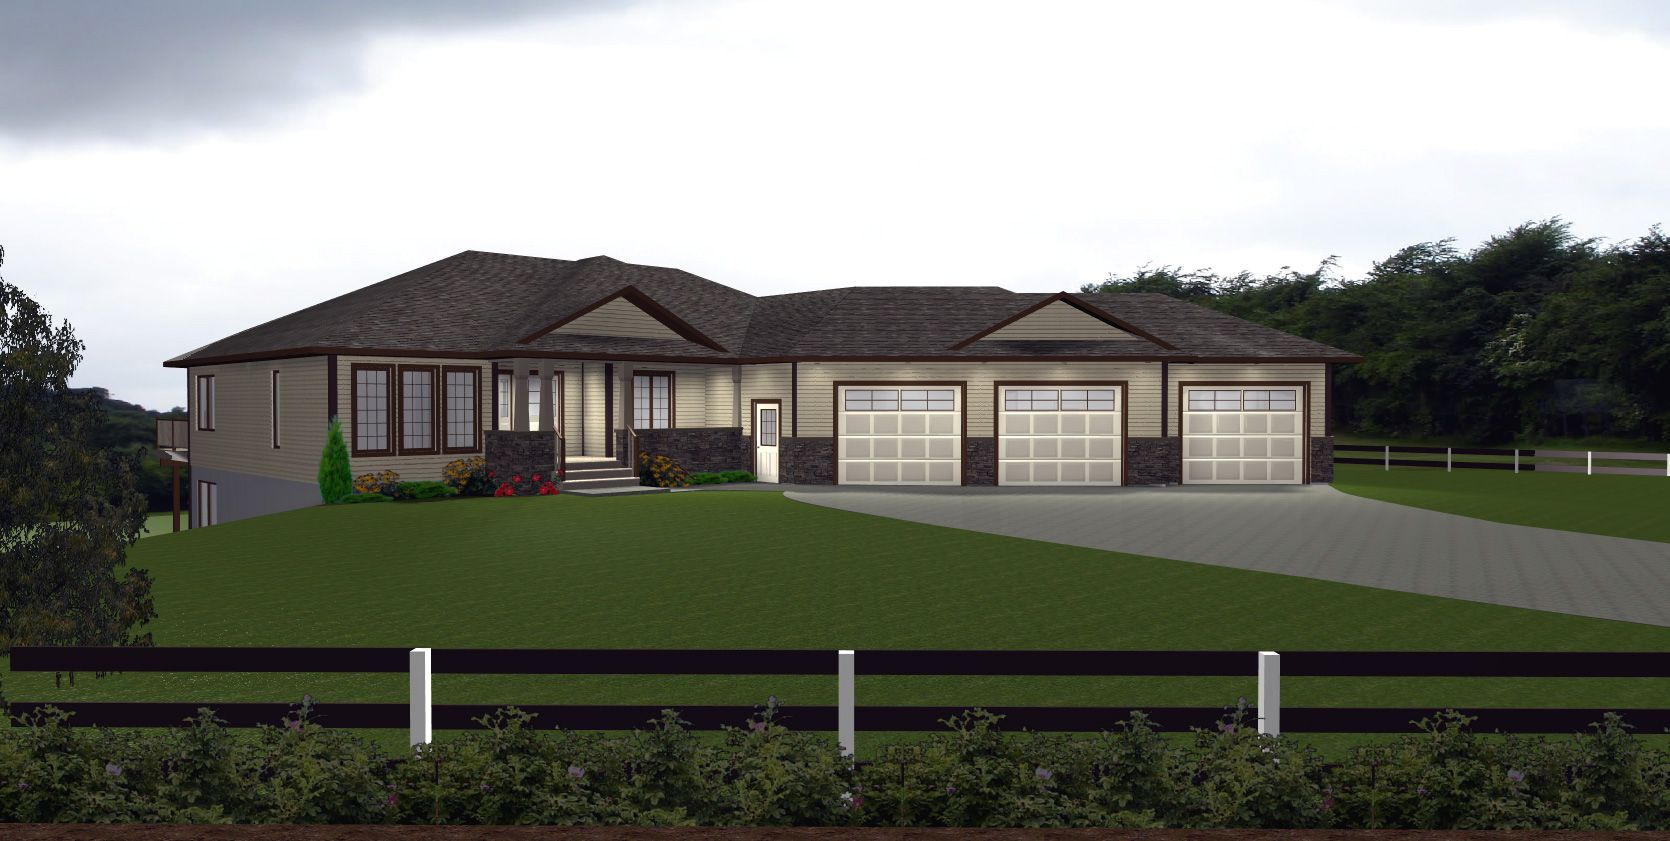 3 car garage 1900 sq ft house plans | Email: info ... Raised Ranch Home With Car Garage Plans on ranch home plans with pool, ranch home plans with study, ranch home plans with wrap around porch, ranch home addition plans, ranch home plans with office, ranch home plans with carport, ranch home plans with cathedral ceilings, ranch home plans with walkout basement, ranch home plans with loft, ranch home plans with open floor plan, room addition above two car garage, ranch home plans with multiple gables, ranch style home plans with basement, ranch home plans with large kitchen,